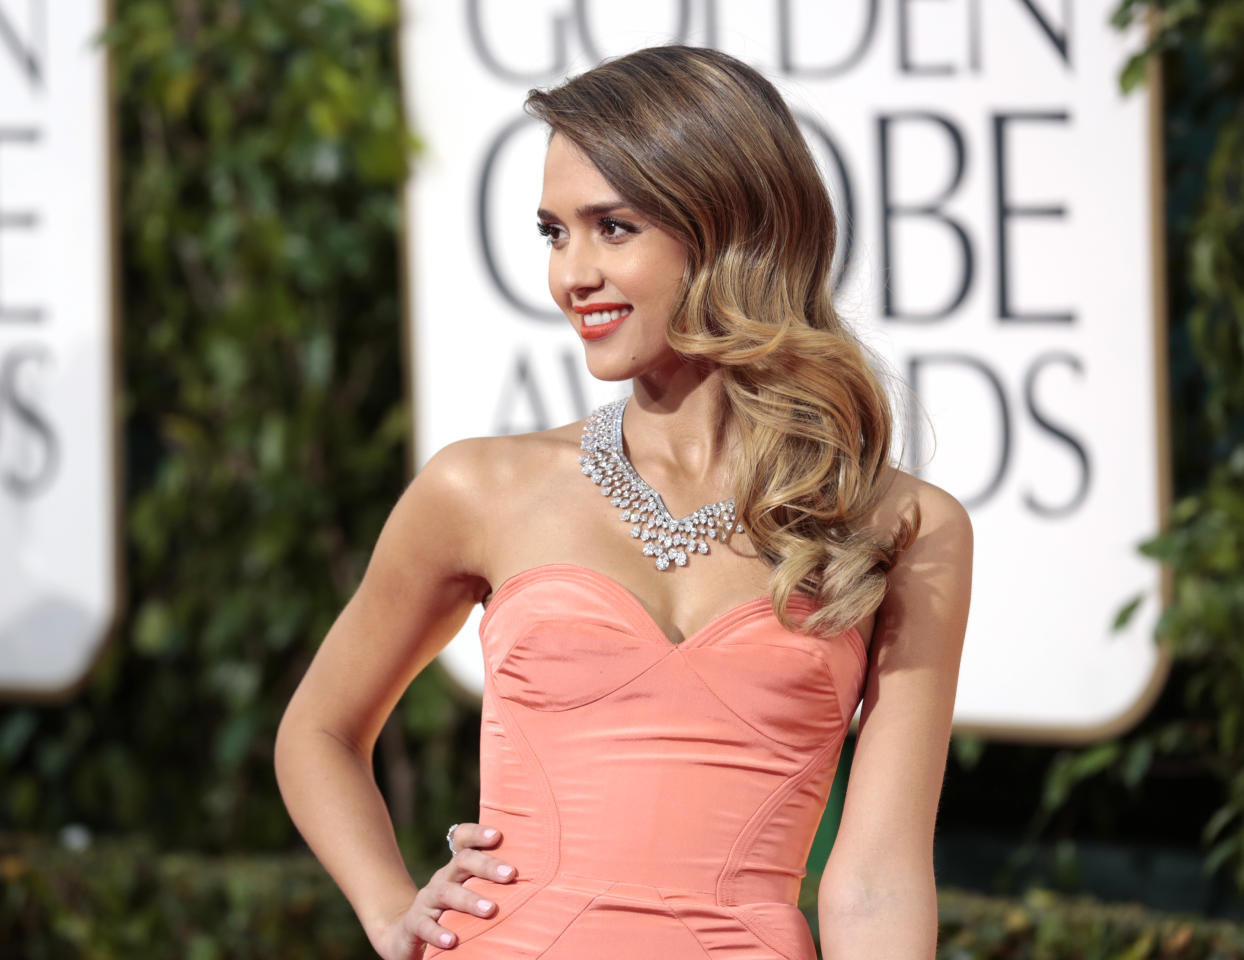 Actress Jessica Alba at the 70th annual Golden Globe Awards in Beverly Hills, California January 13, 2013. REUTERS/Jason Redmond (UNITED STATES - Tags: Entertainment) (GOLDENGLOBES-ARRIVALS)